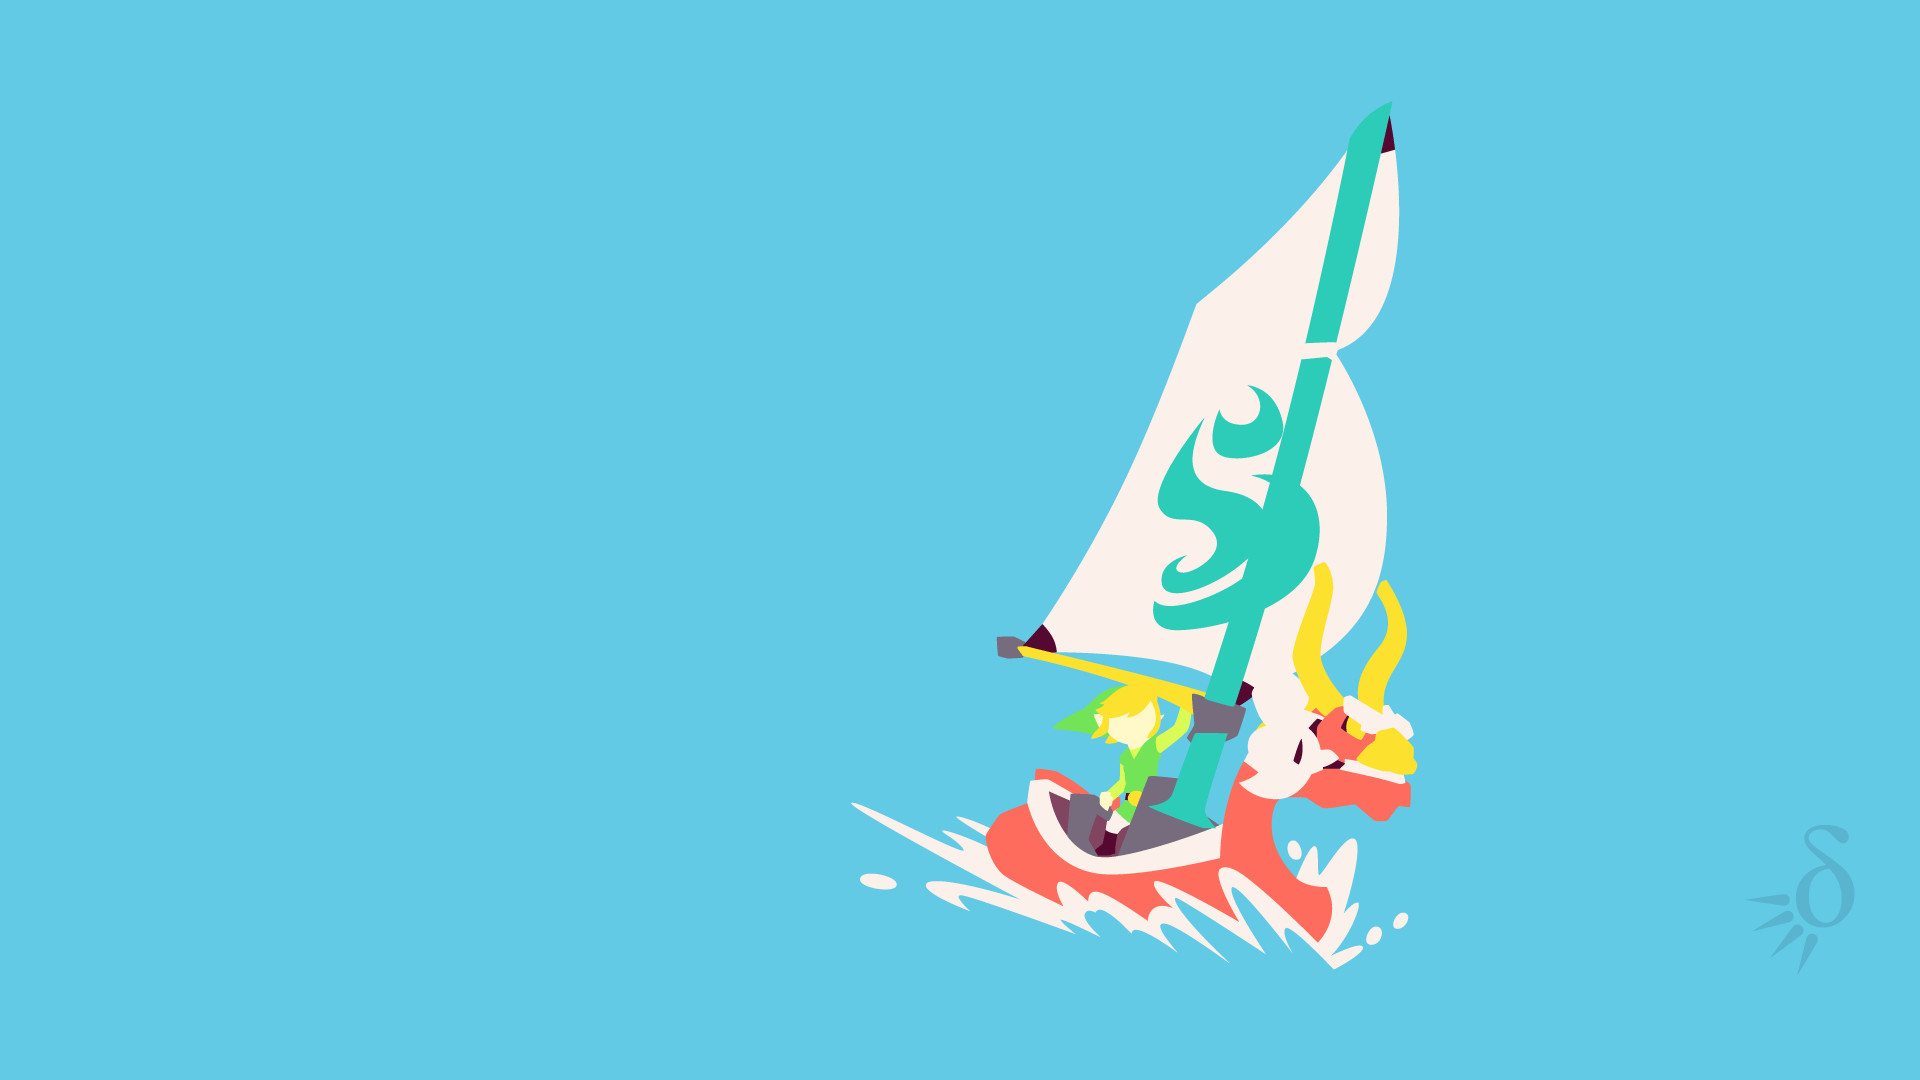 … Nice Wind Waker Wallpaper of awesome full screen HD wallpapers to  download for free. You